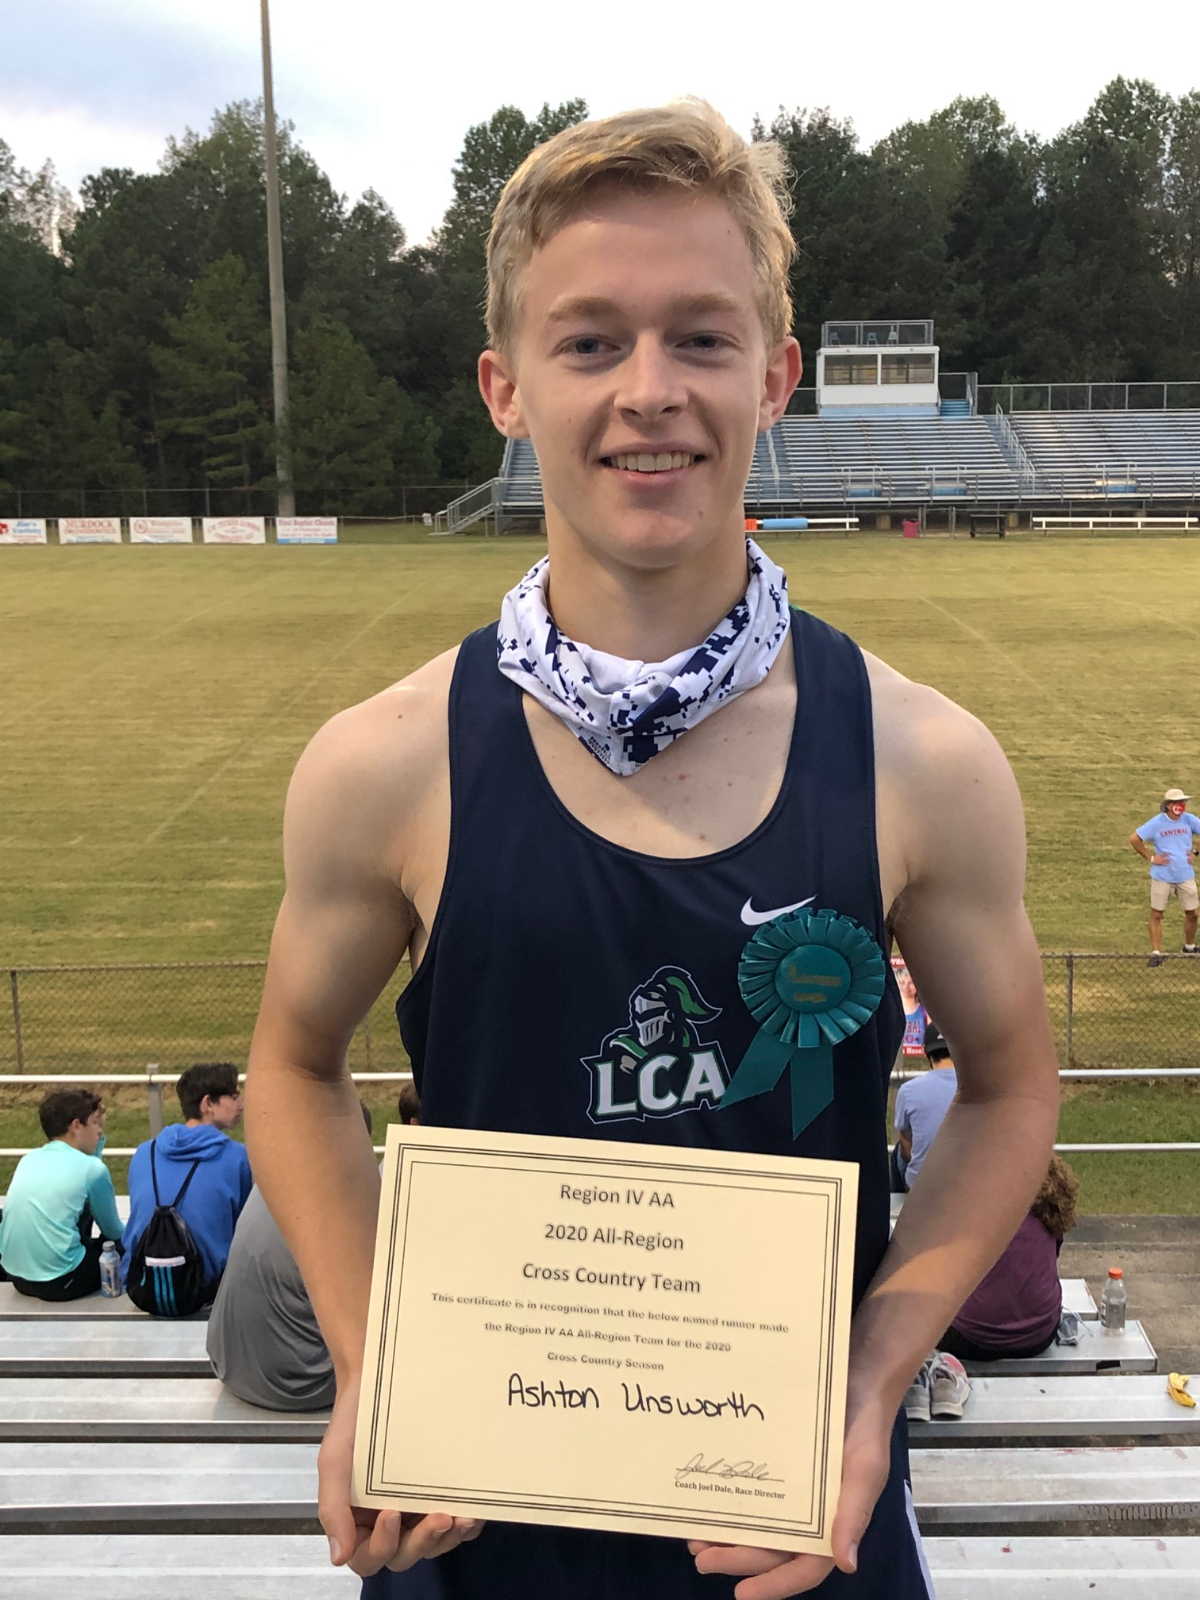 Ashton Unsworth named all region in Cross Country